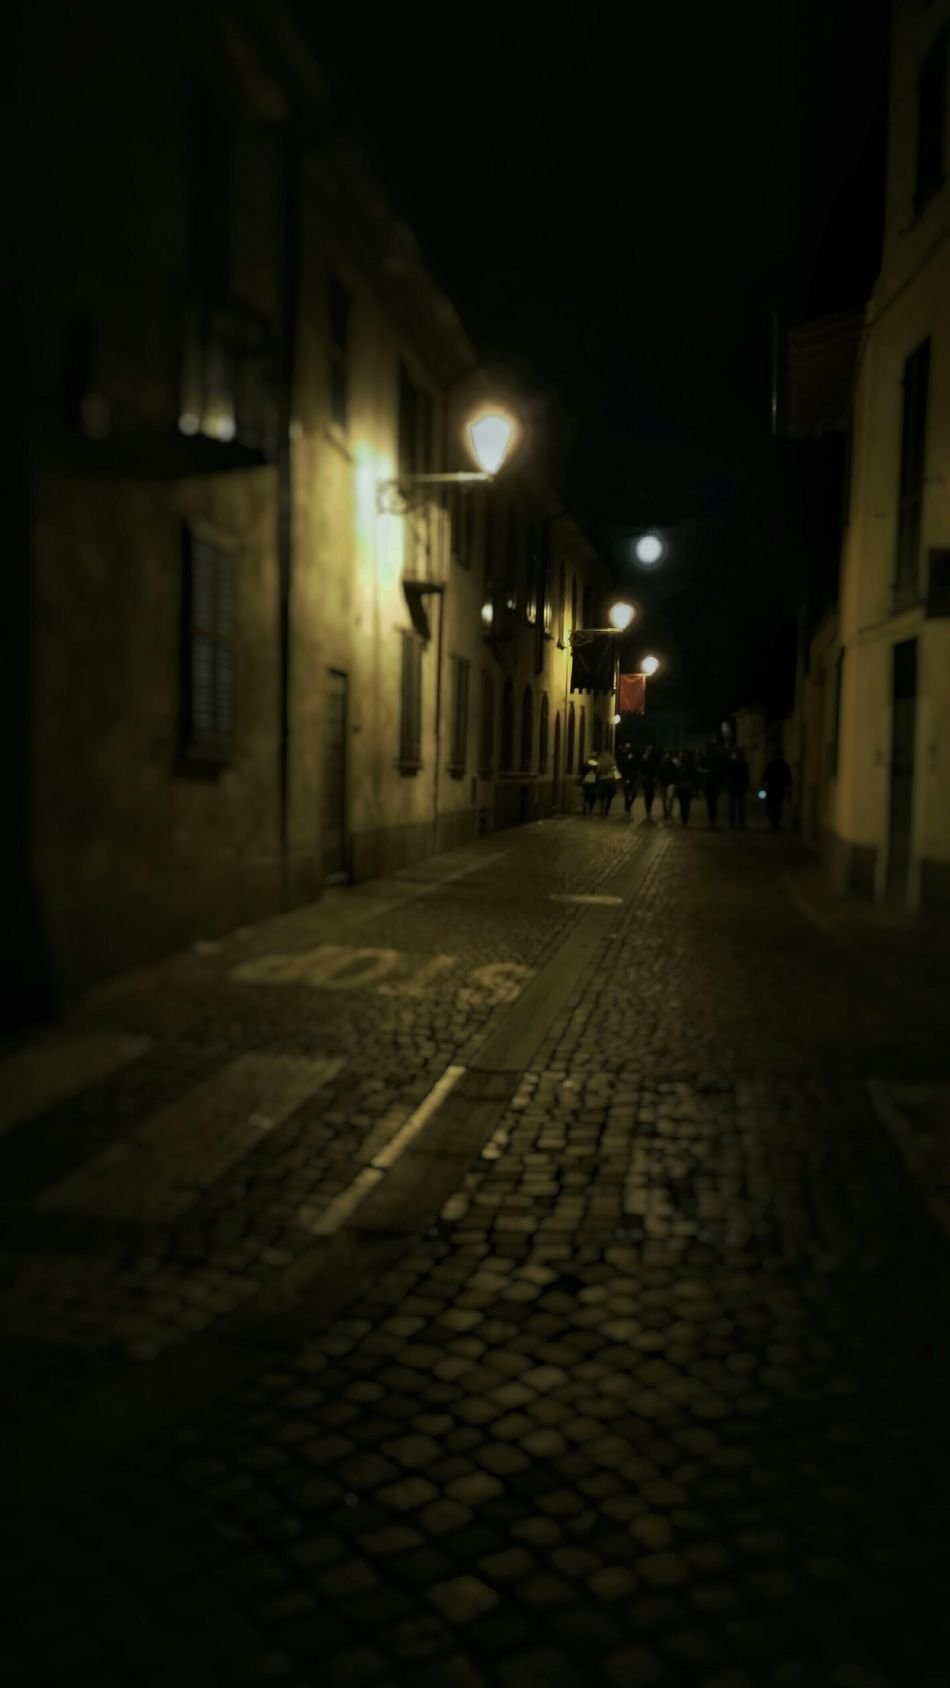 The moonlight Taking Photos Enjoying Life Sweet Moments Streetphotography Italy Small Town NightInTown Nightlife Night Lights Nightphotography